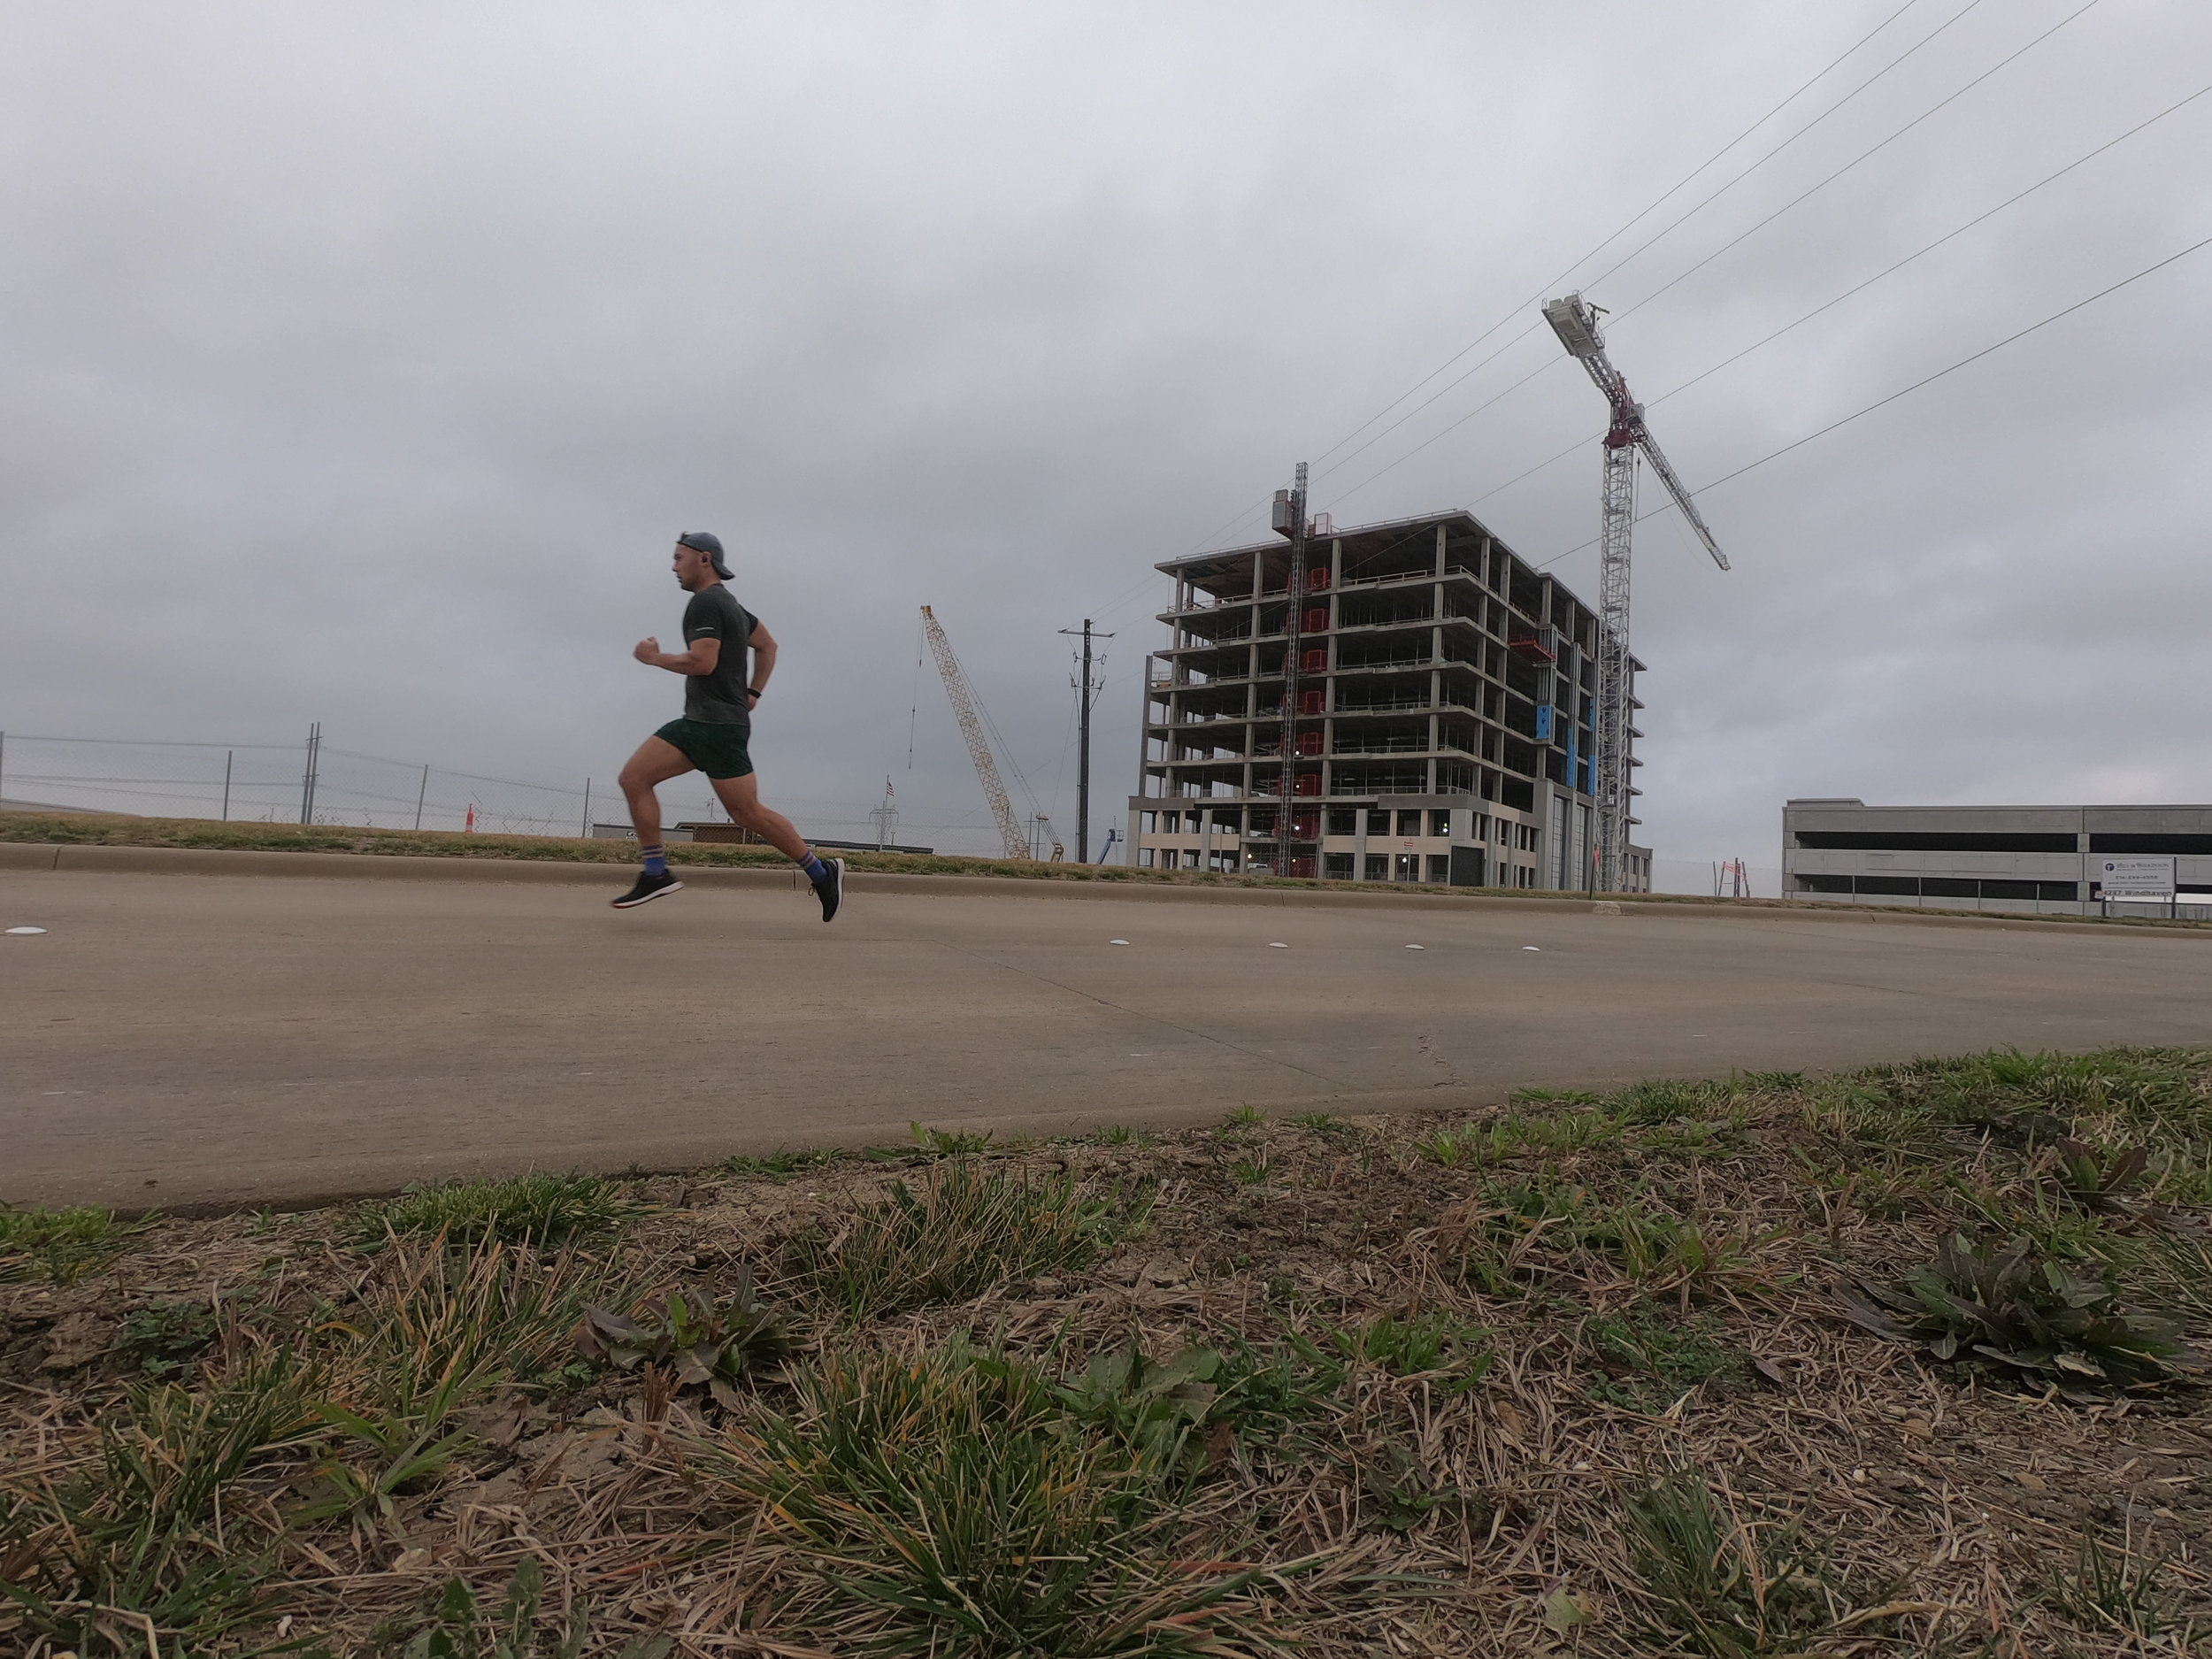 Playing in traffic, running in The Colony, Texas